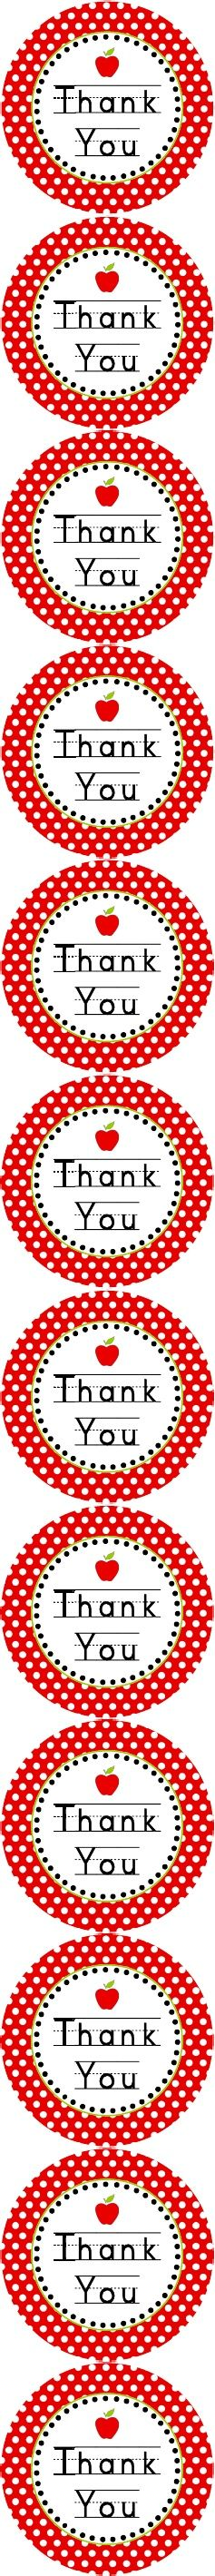 free apple thank you tags for back-to-school or Teacher Appreciation {Dimple Prints}